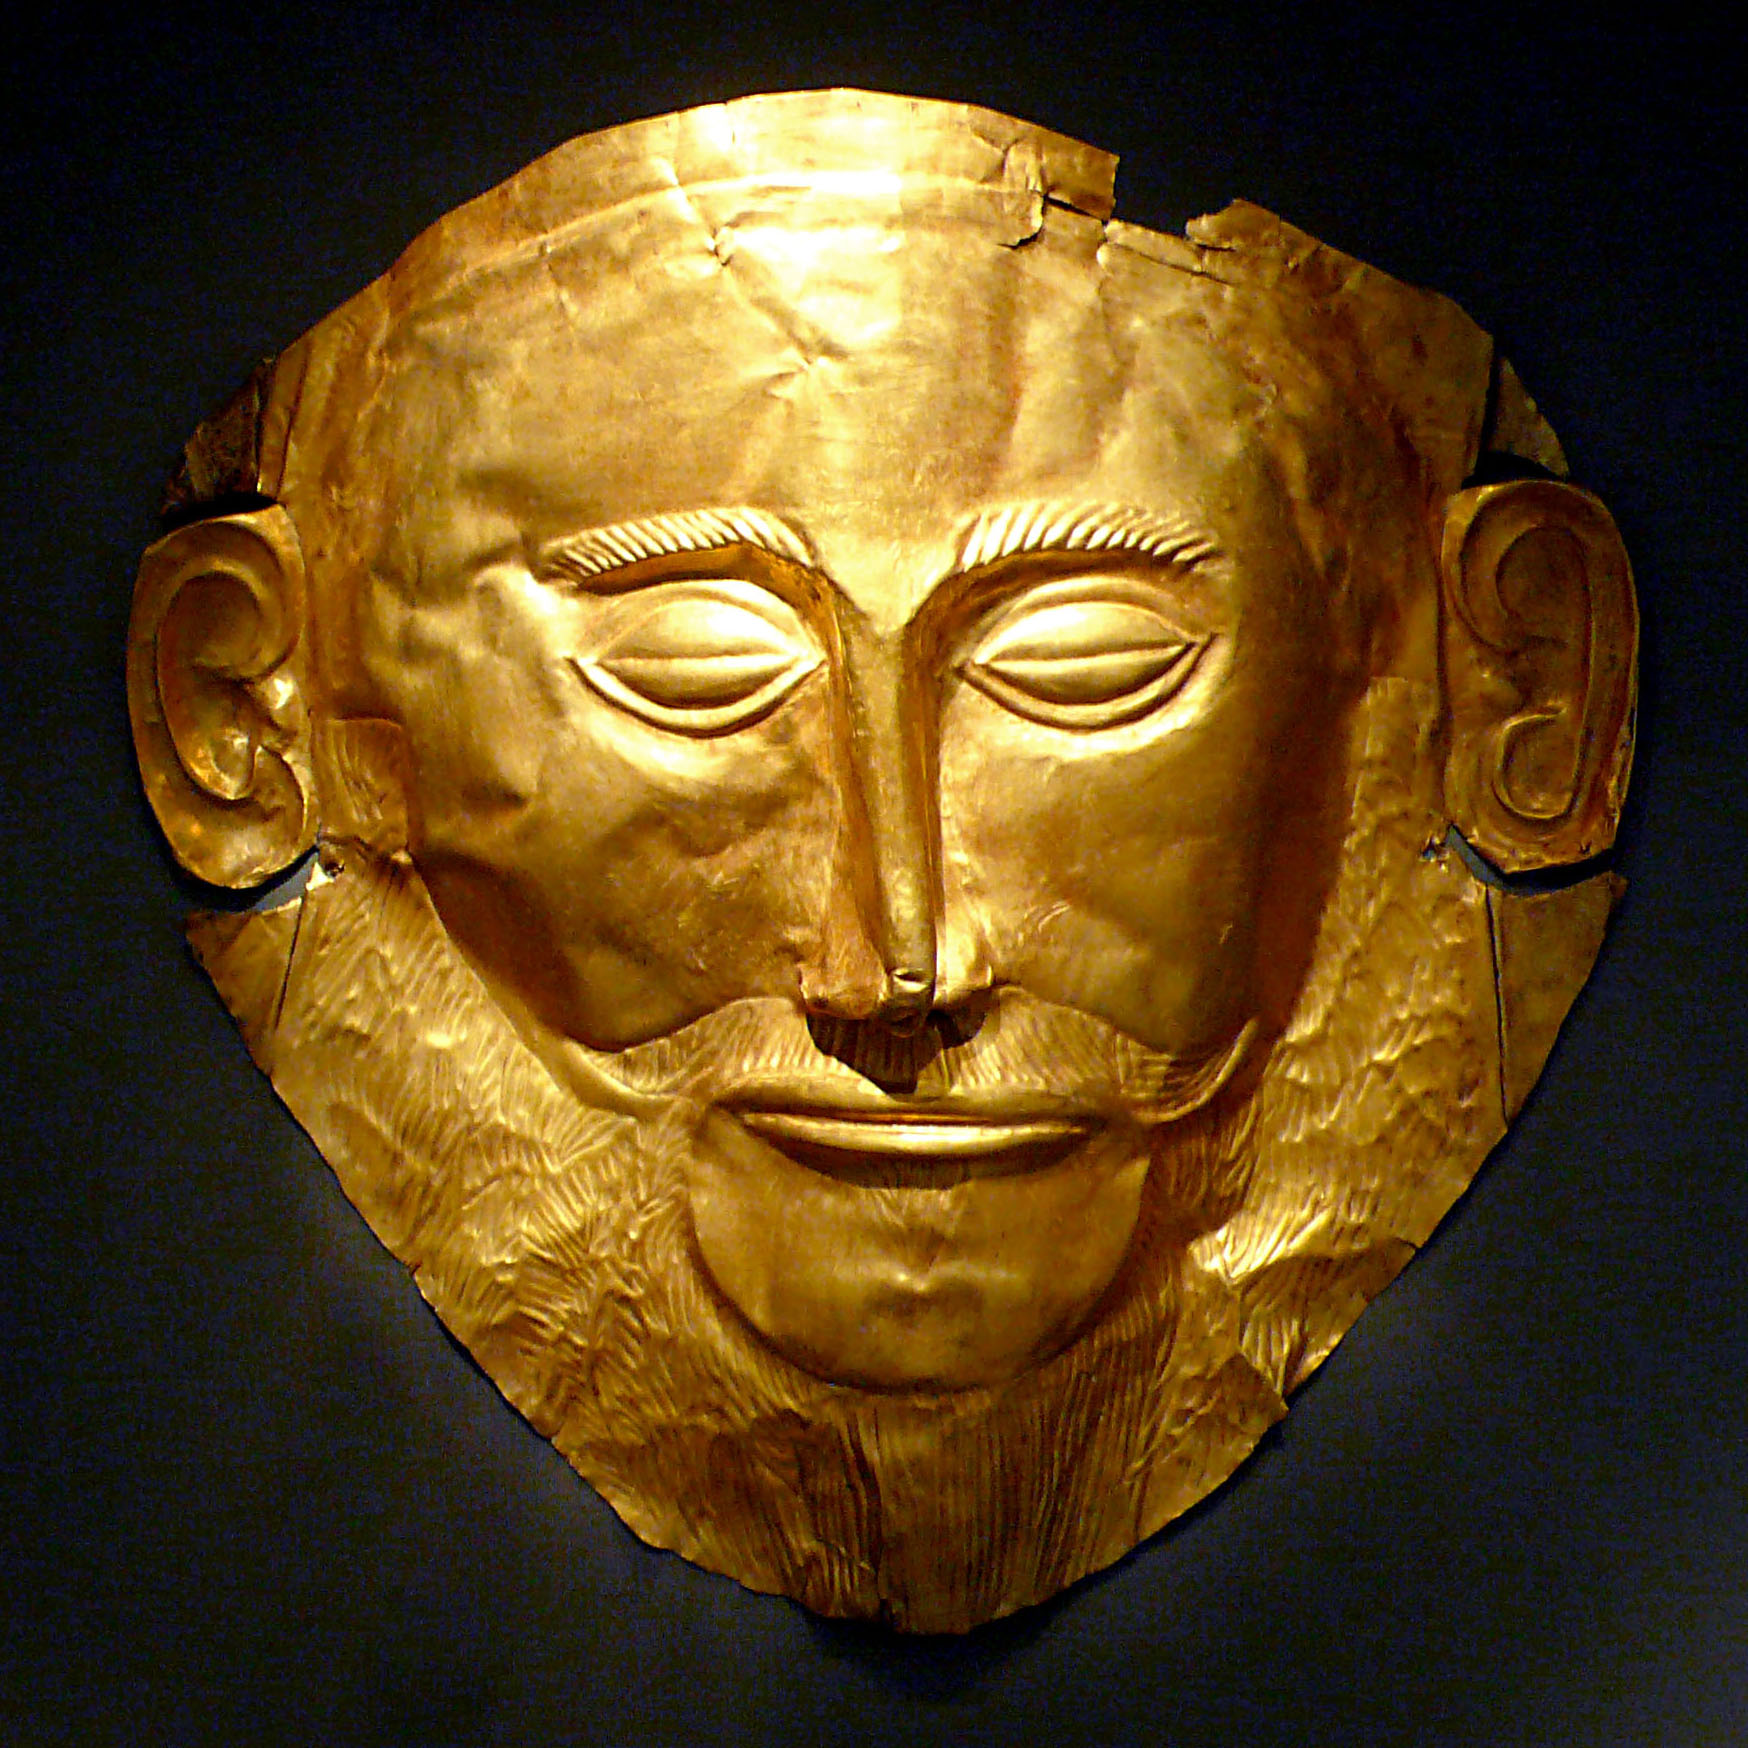 Mask of Agamemnon by Xuan Che - Self-photographed (Flickr), 20 December 2010, CC BY 2.0